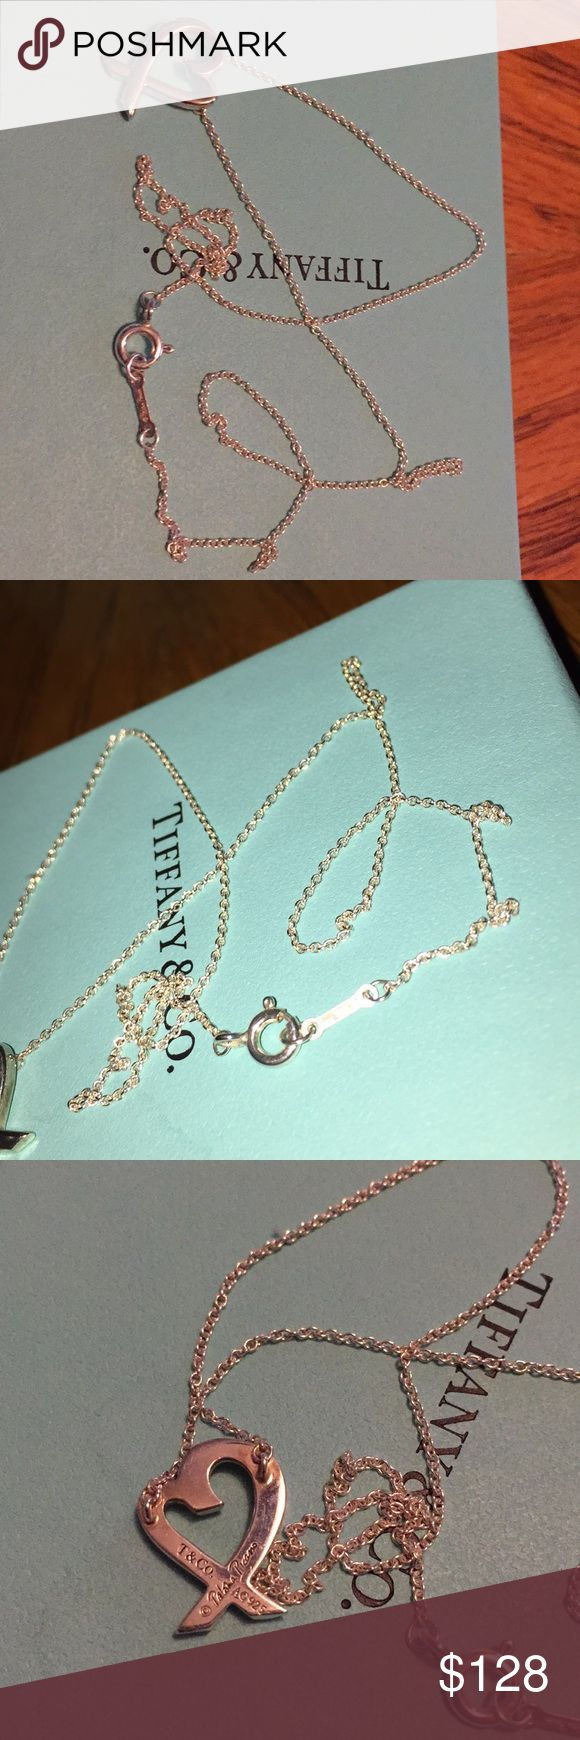 TIFFANY HEART NECKLACE Comes with box and dust bag. Worn once. Tiffany & Co. Jewelry Necklaces